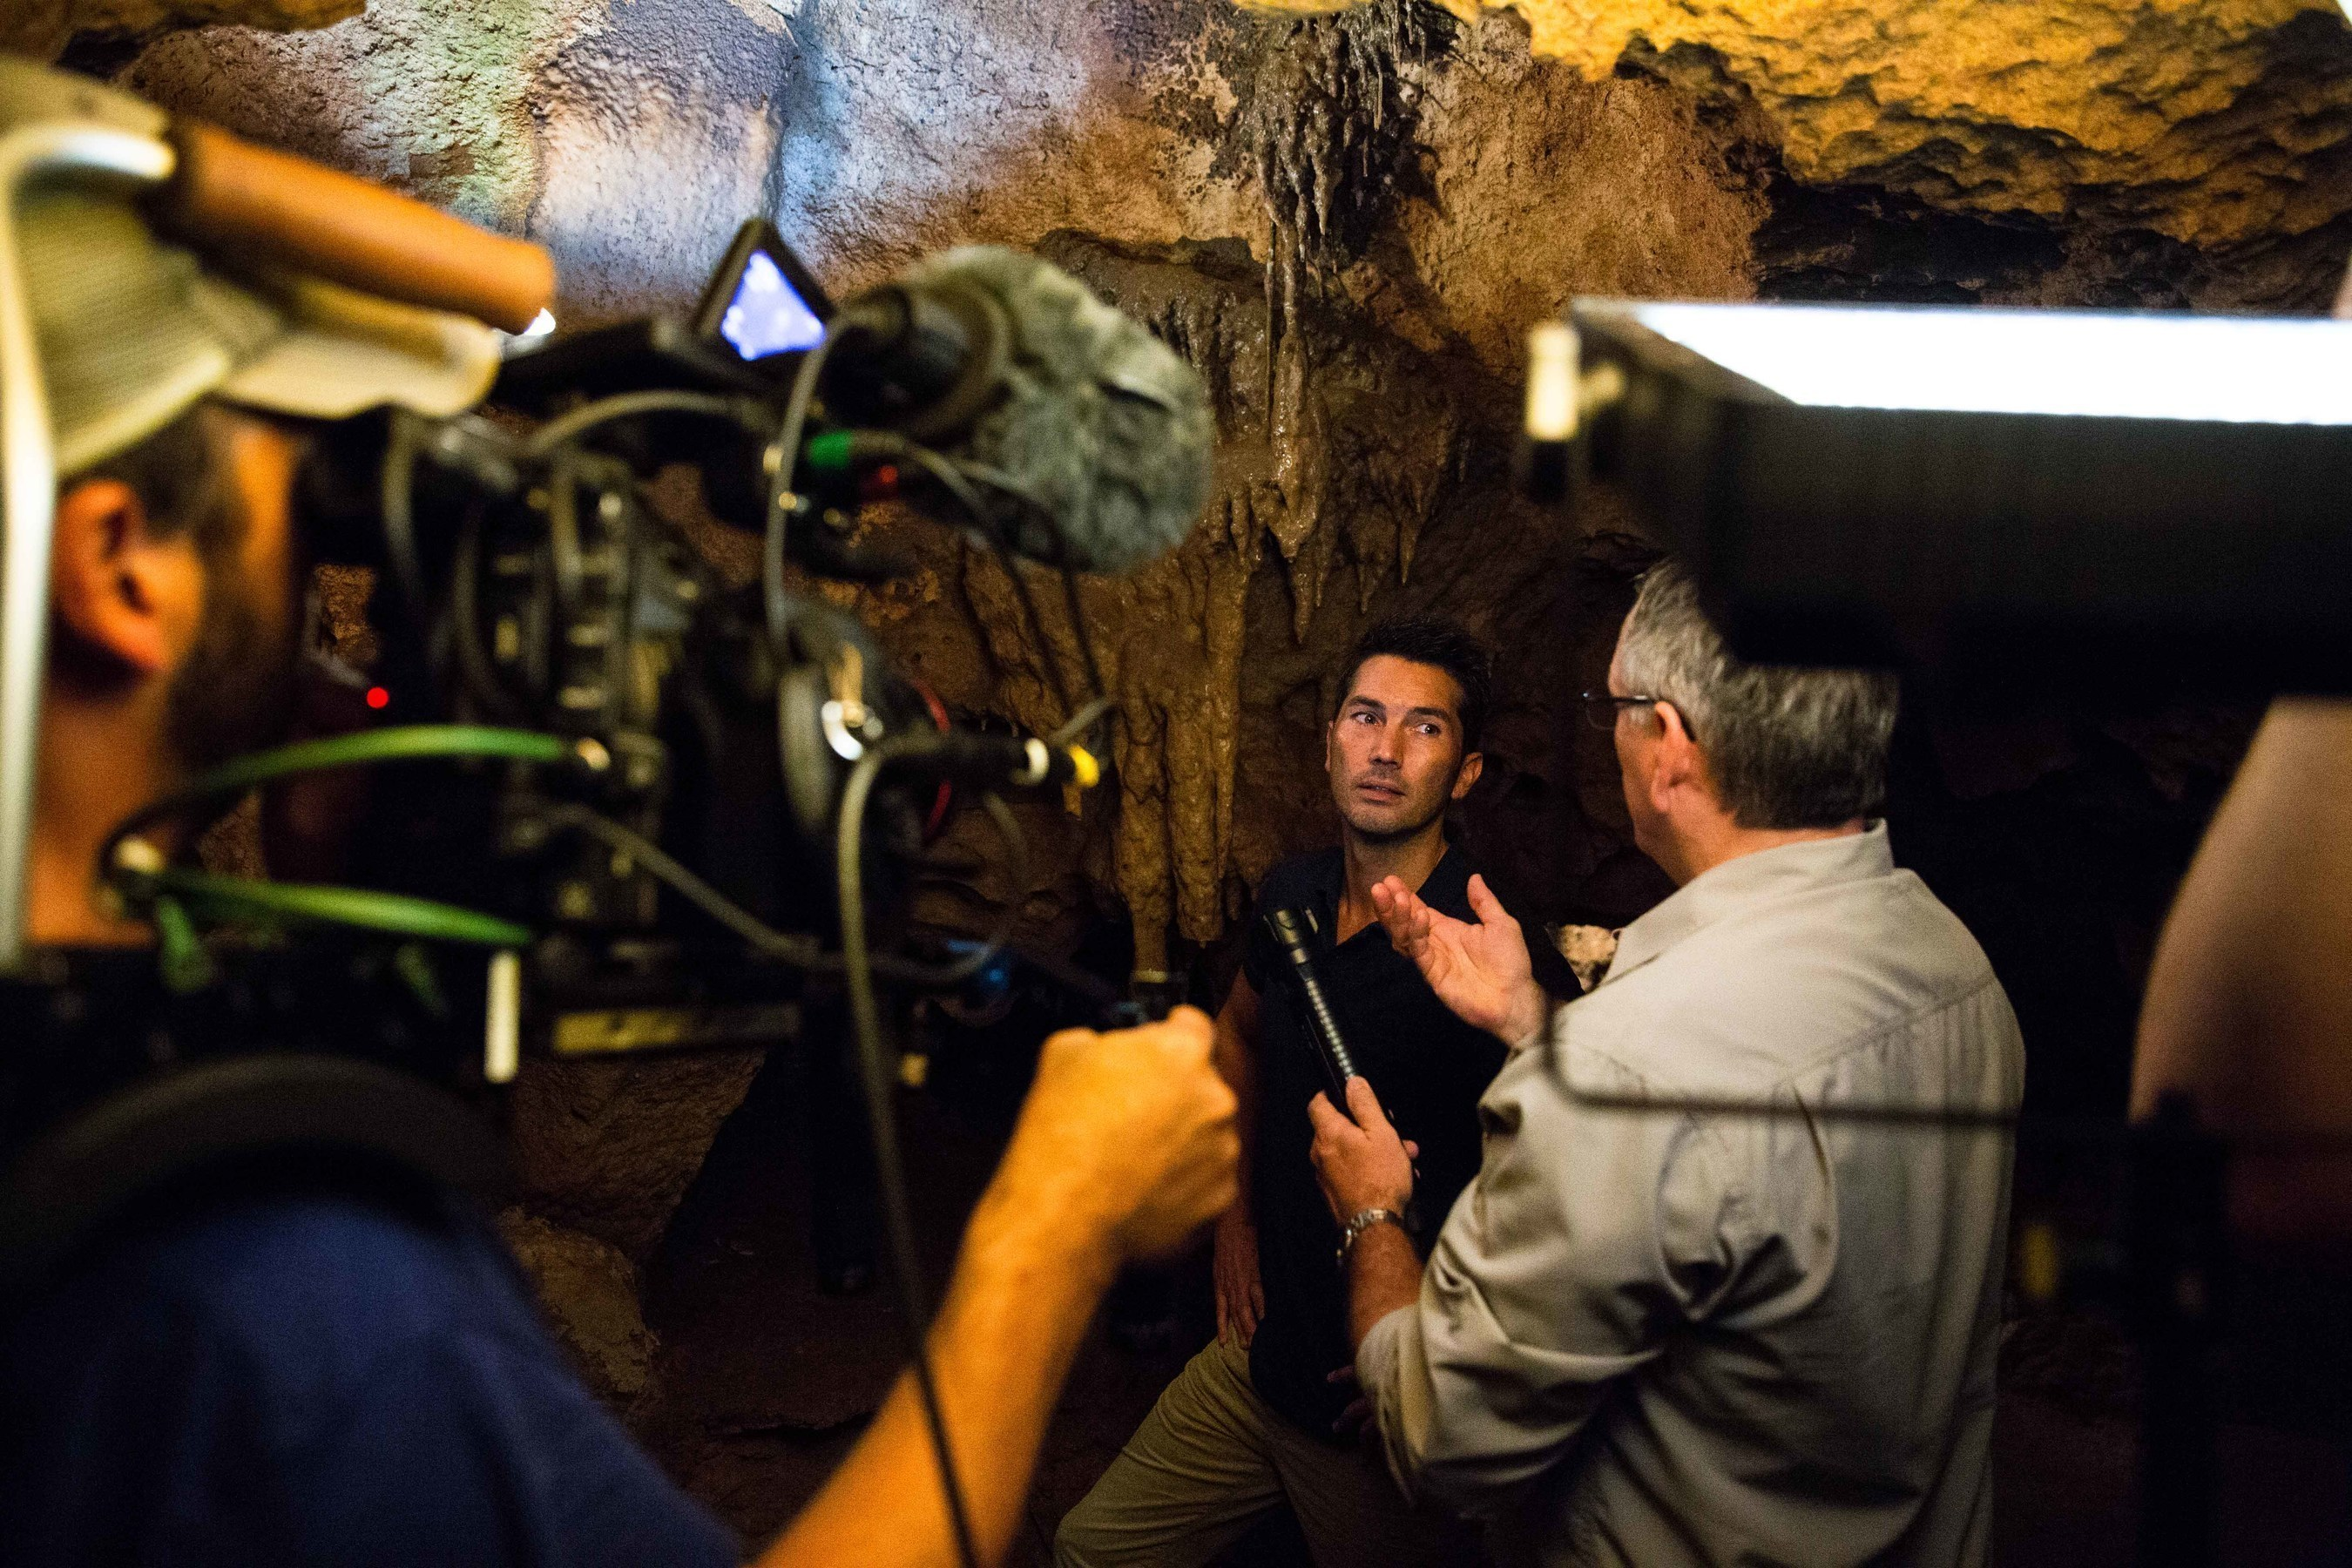 Tampa Law Firm Featured in International Sinkhole Documentary